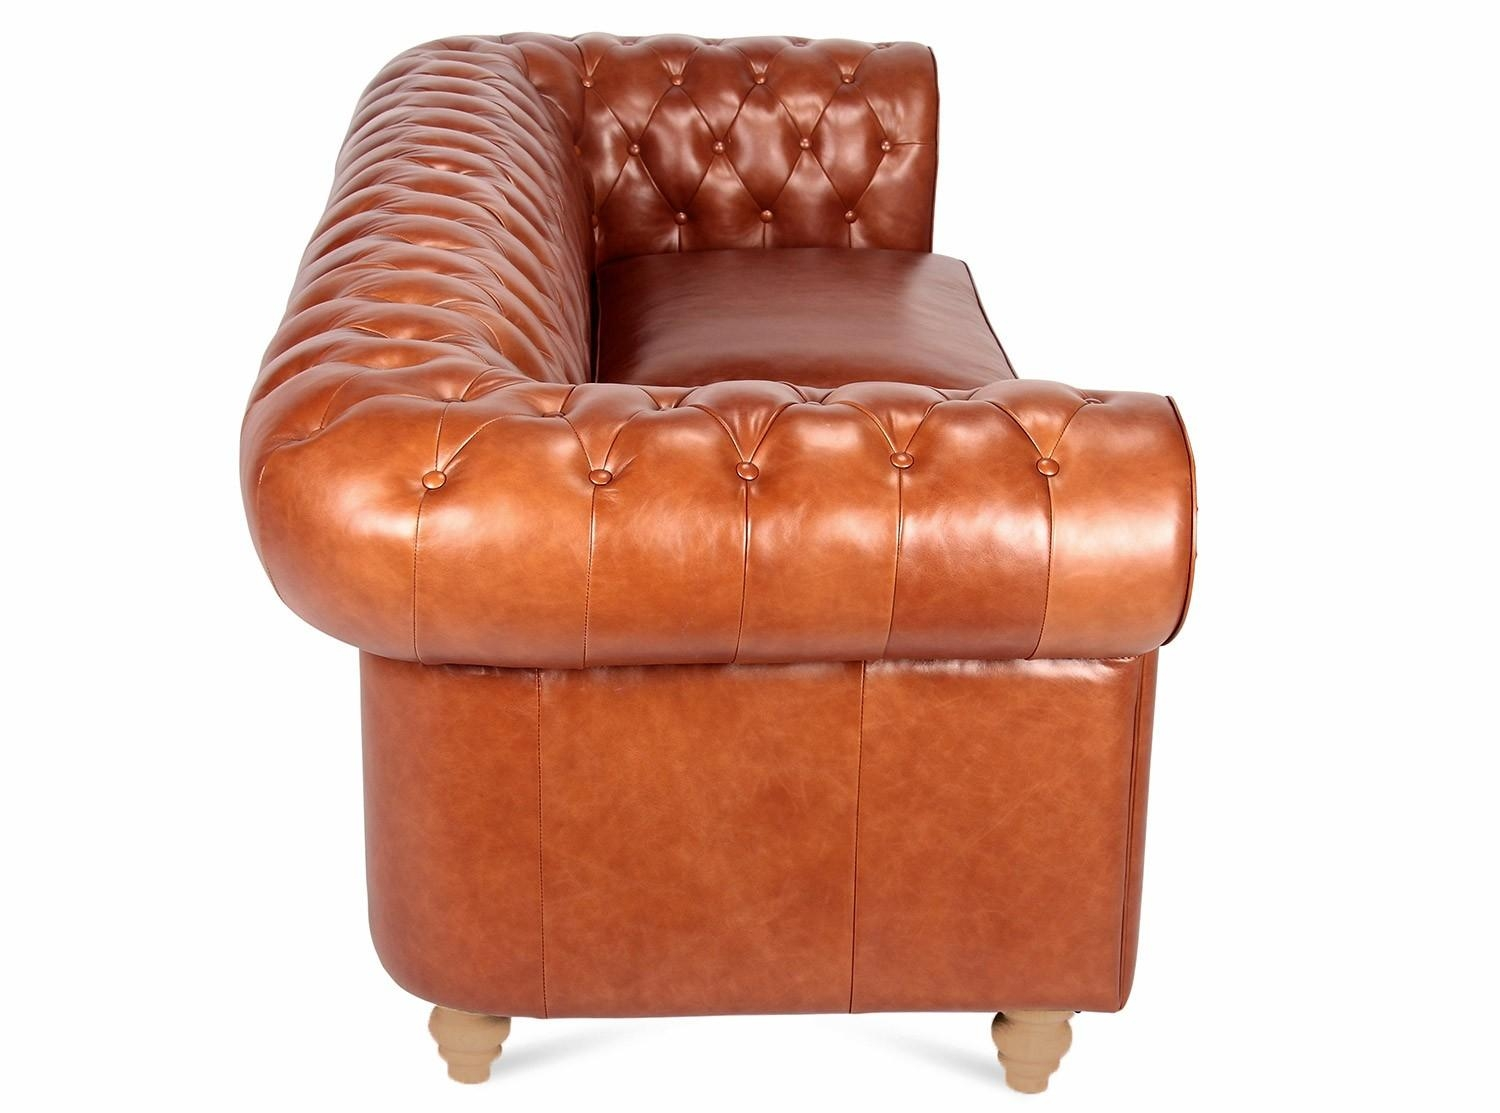 Chesterfield Sofa 3 Seater Pertaining To Aniline Leather Sofas (View 14 of 20)